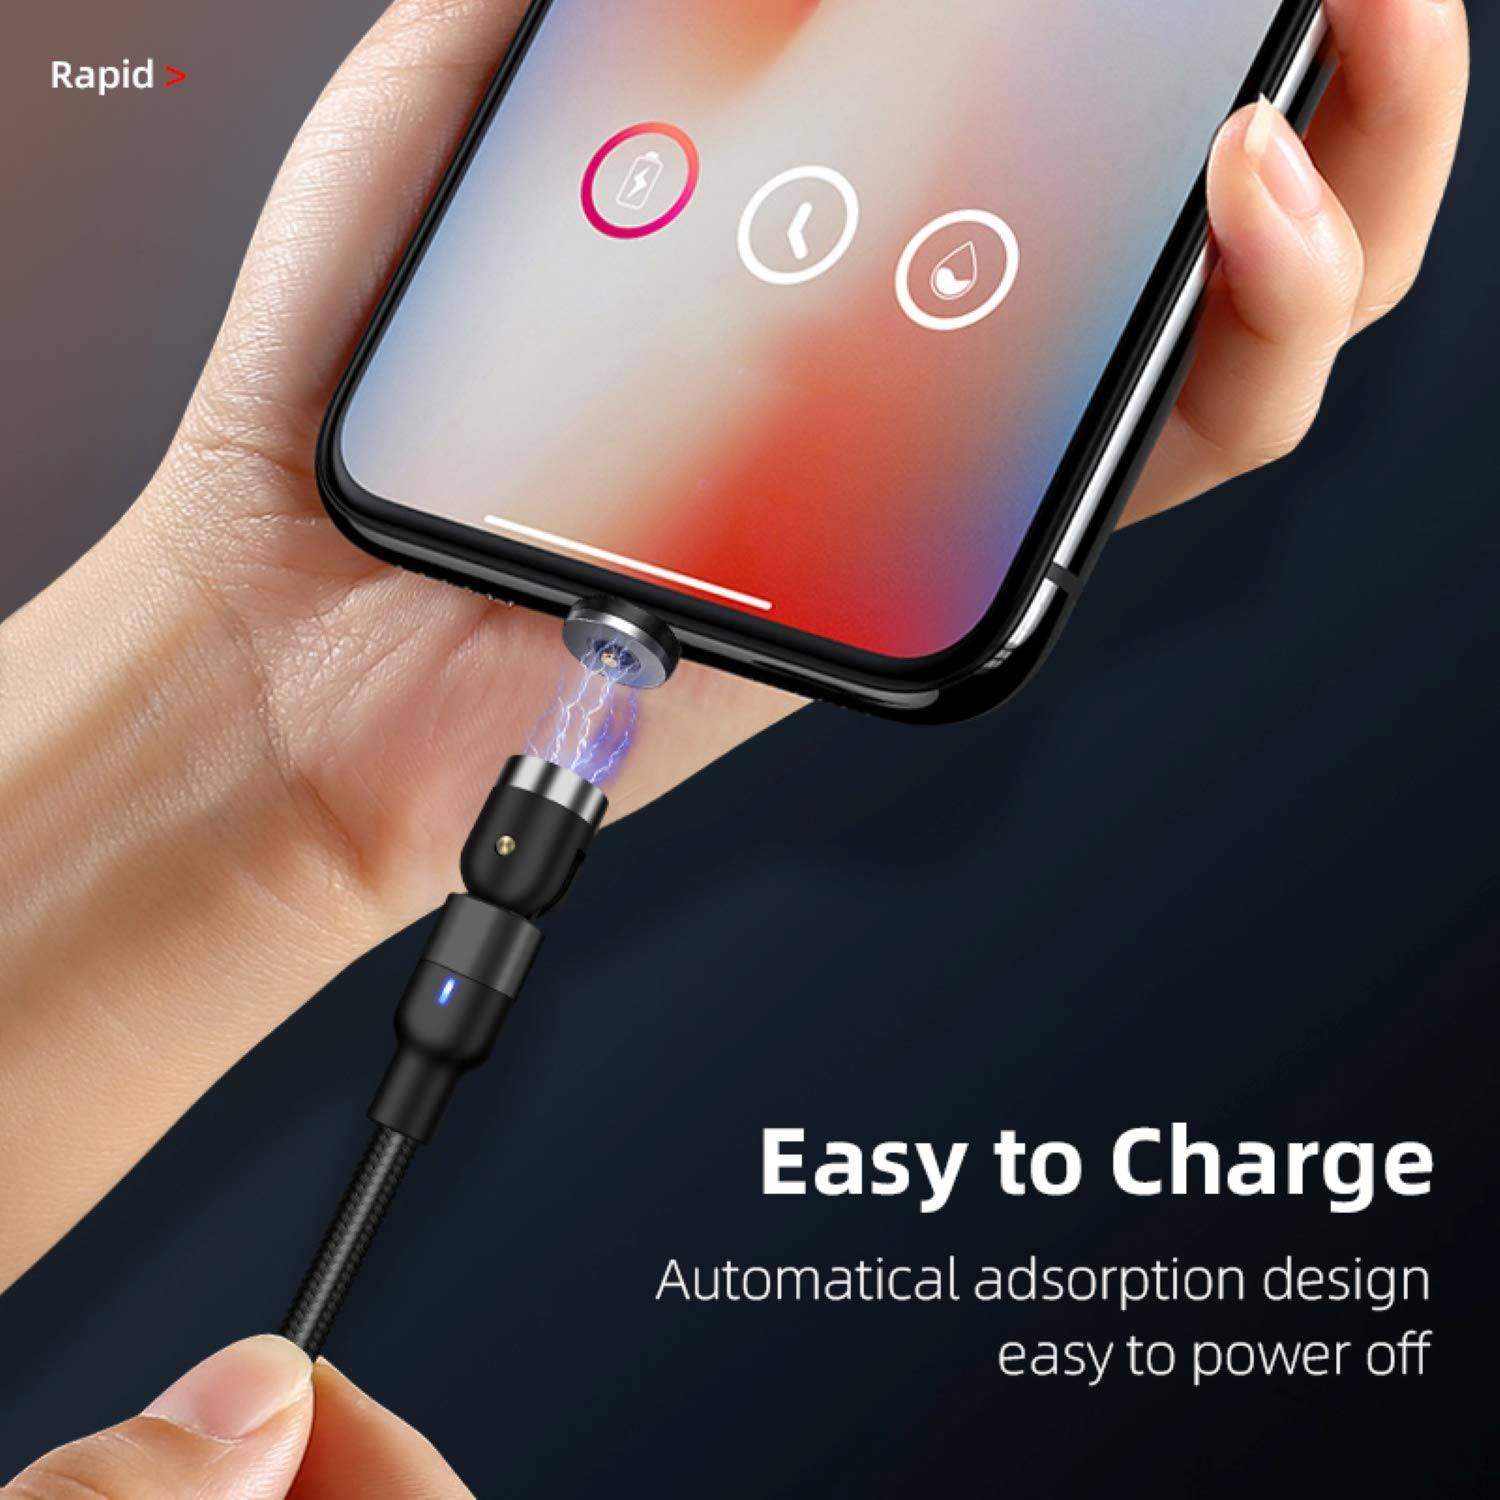 iPhone//Pads Type-C 3PKS Compatible with Micro USB 3.3 ft x 2 + 6.6 ft x 1 Magnetic Charging Cable 360/° /& 180/° Rotation 3 in 1 Magnetic Phone USB Charger Cable iOS Android Smartphone//Tablet